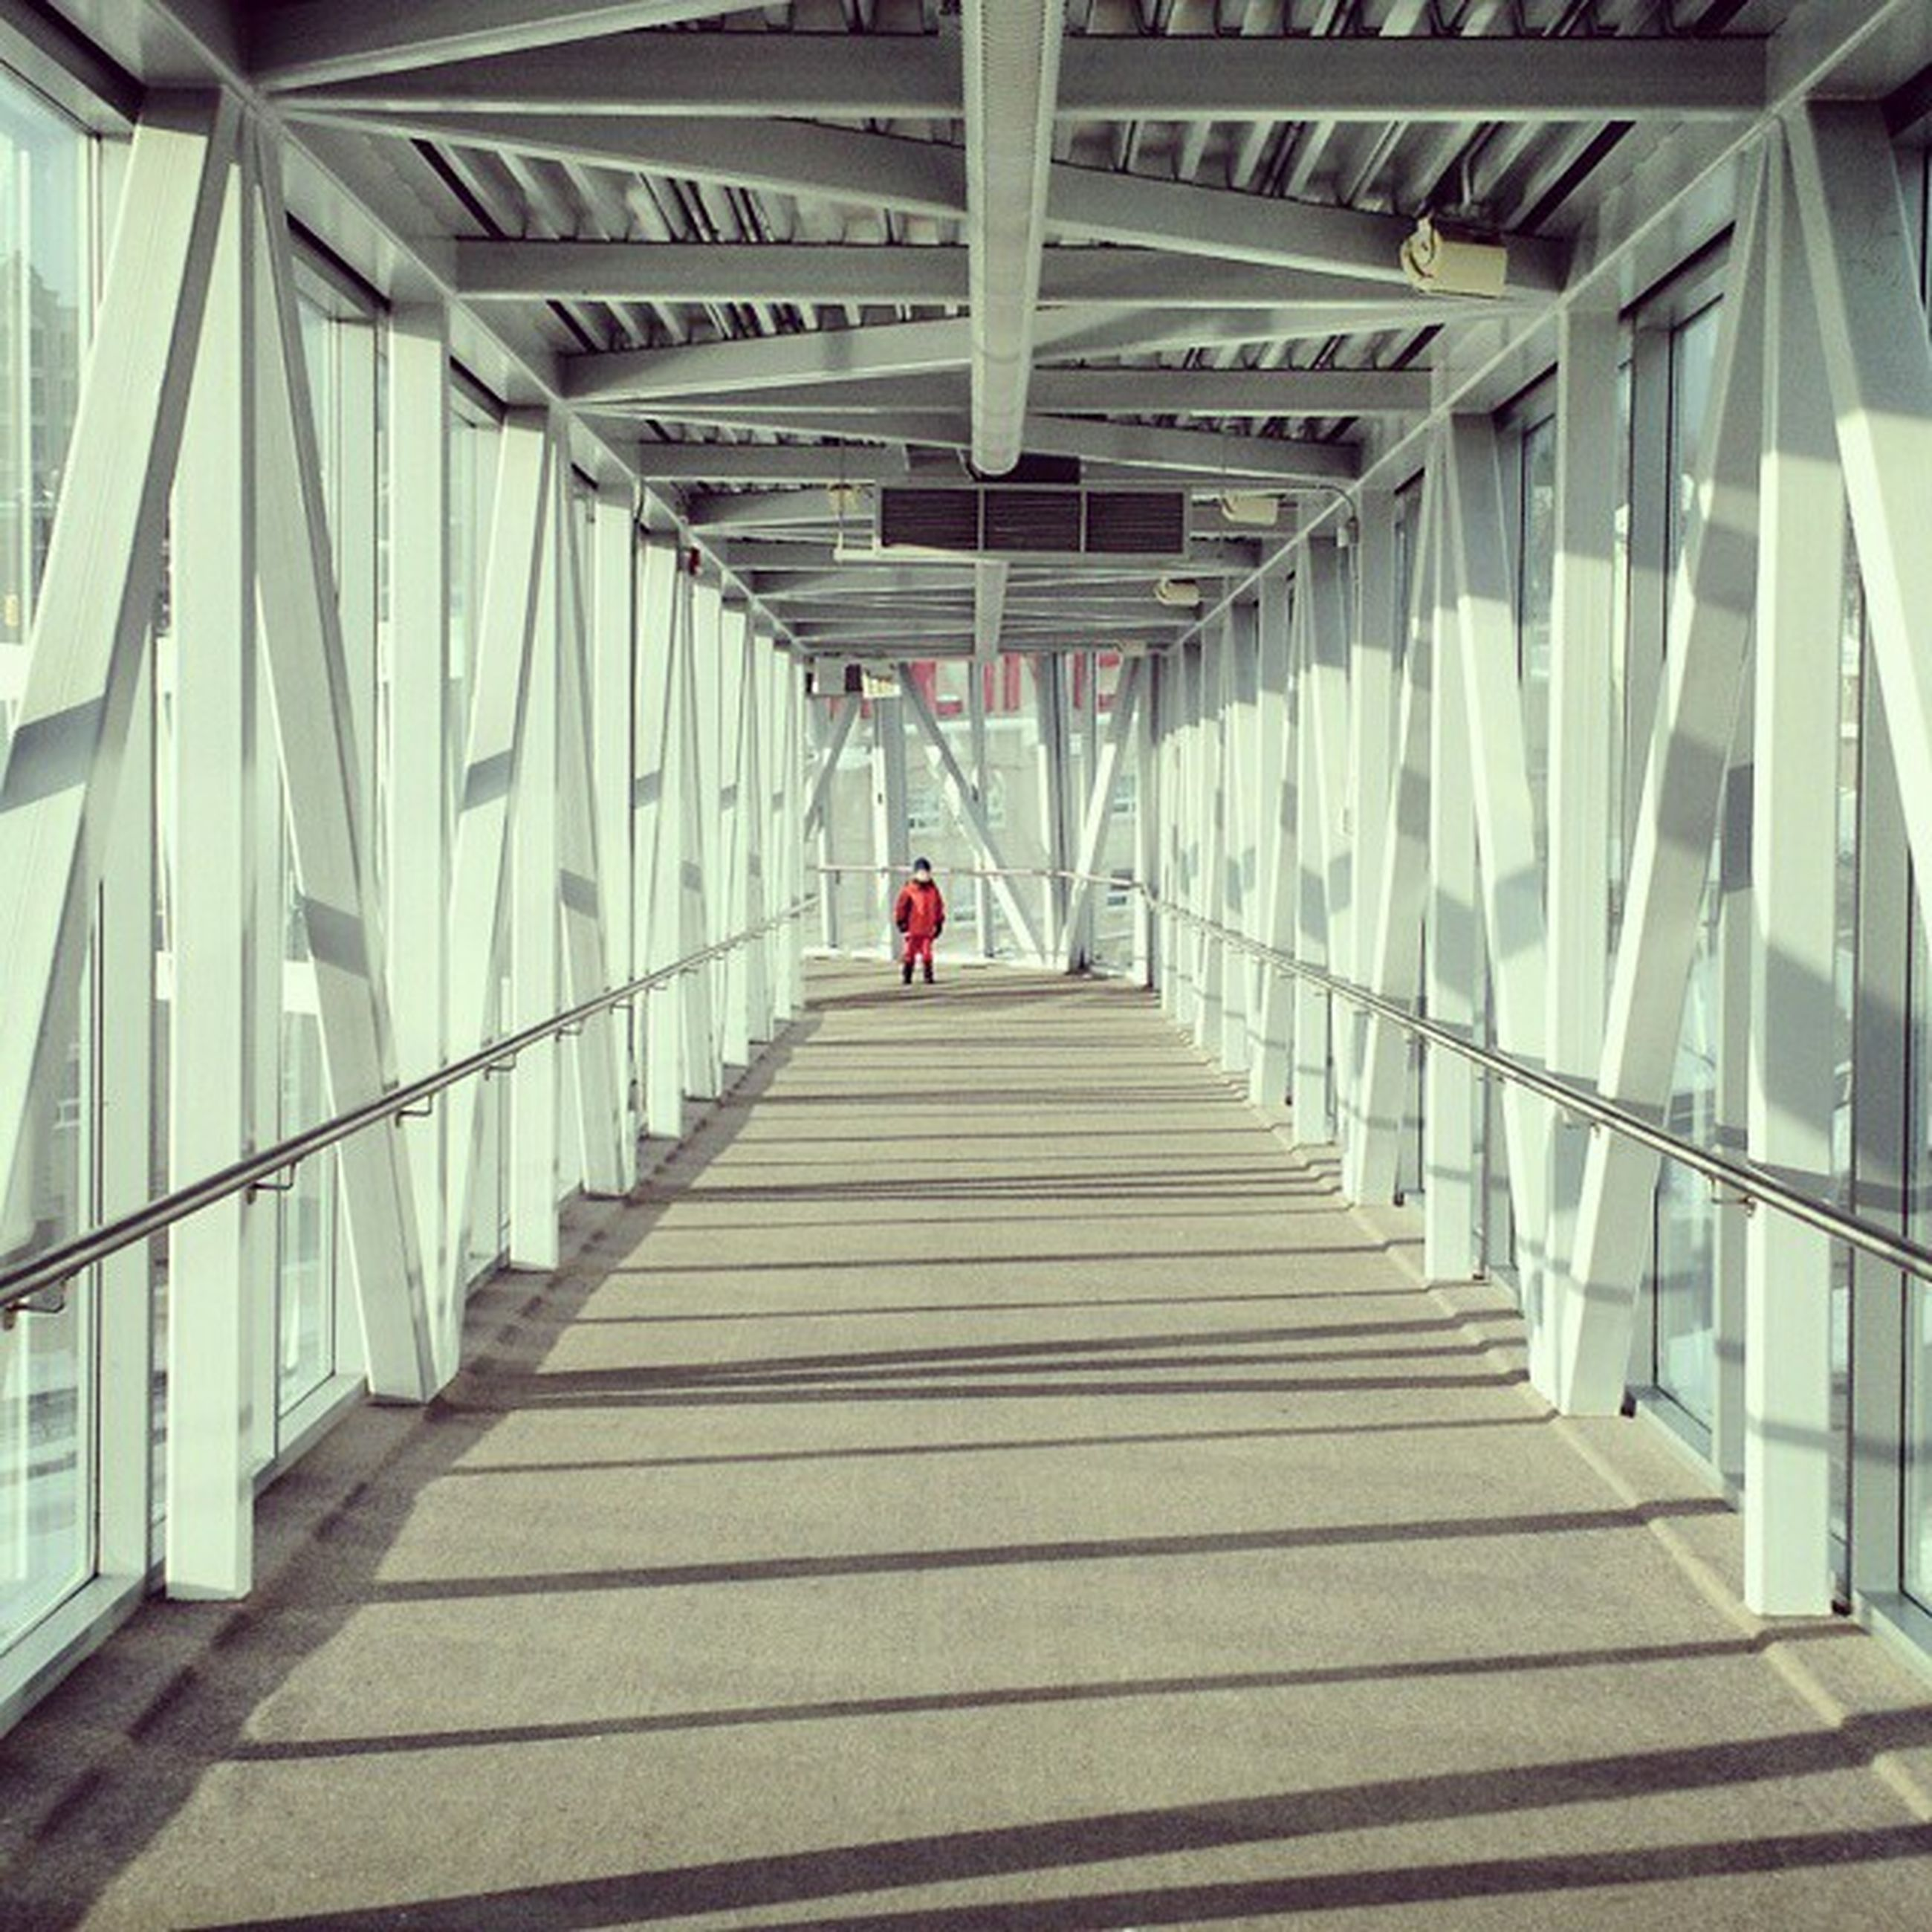 the way forward, architecture, built structure, railing, walking, men, lifestyles, rear view, indoors, diminishing perspective, full length, person, leisure activity, footbridge, vanishing point, day, steps, low angle view